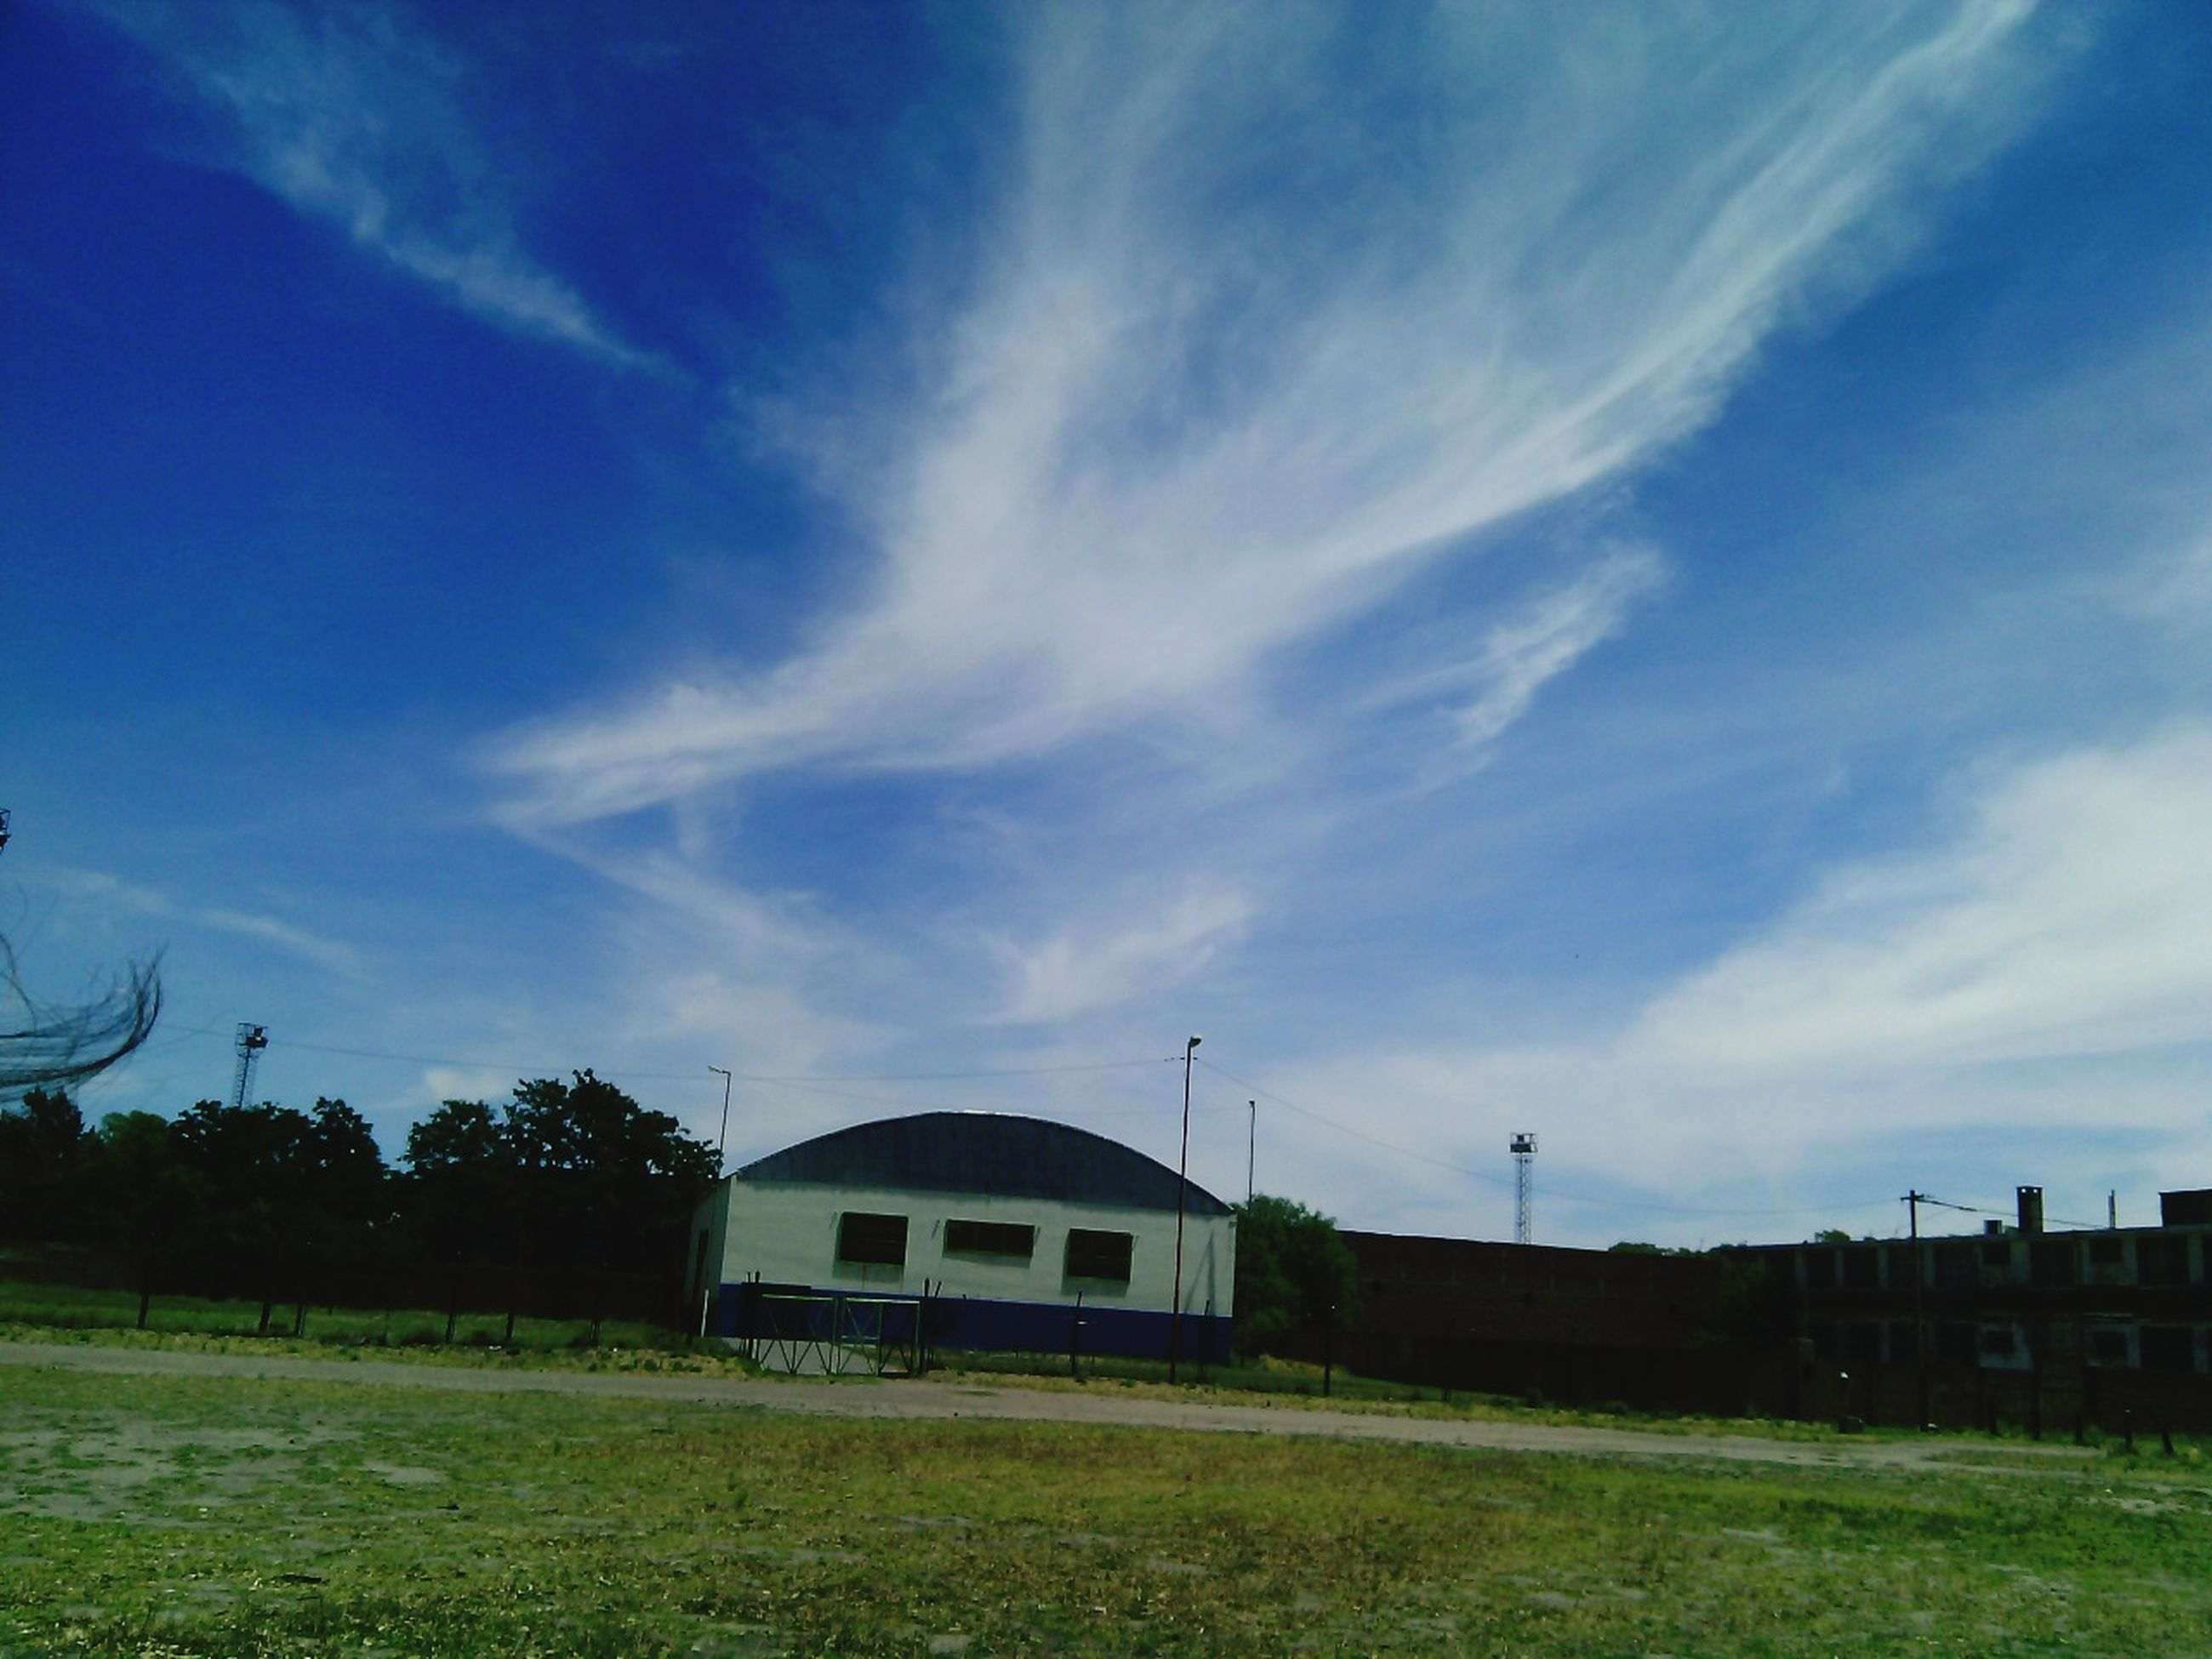 sky, grass, cloud - sky, field, no people, rural scene, built structure, nature, agriculture, landscape, outdoors, architecture, day